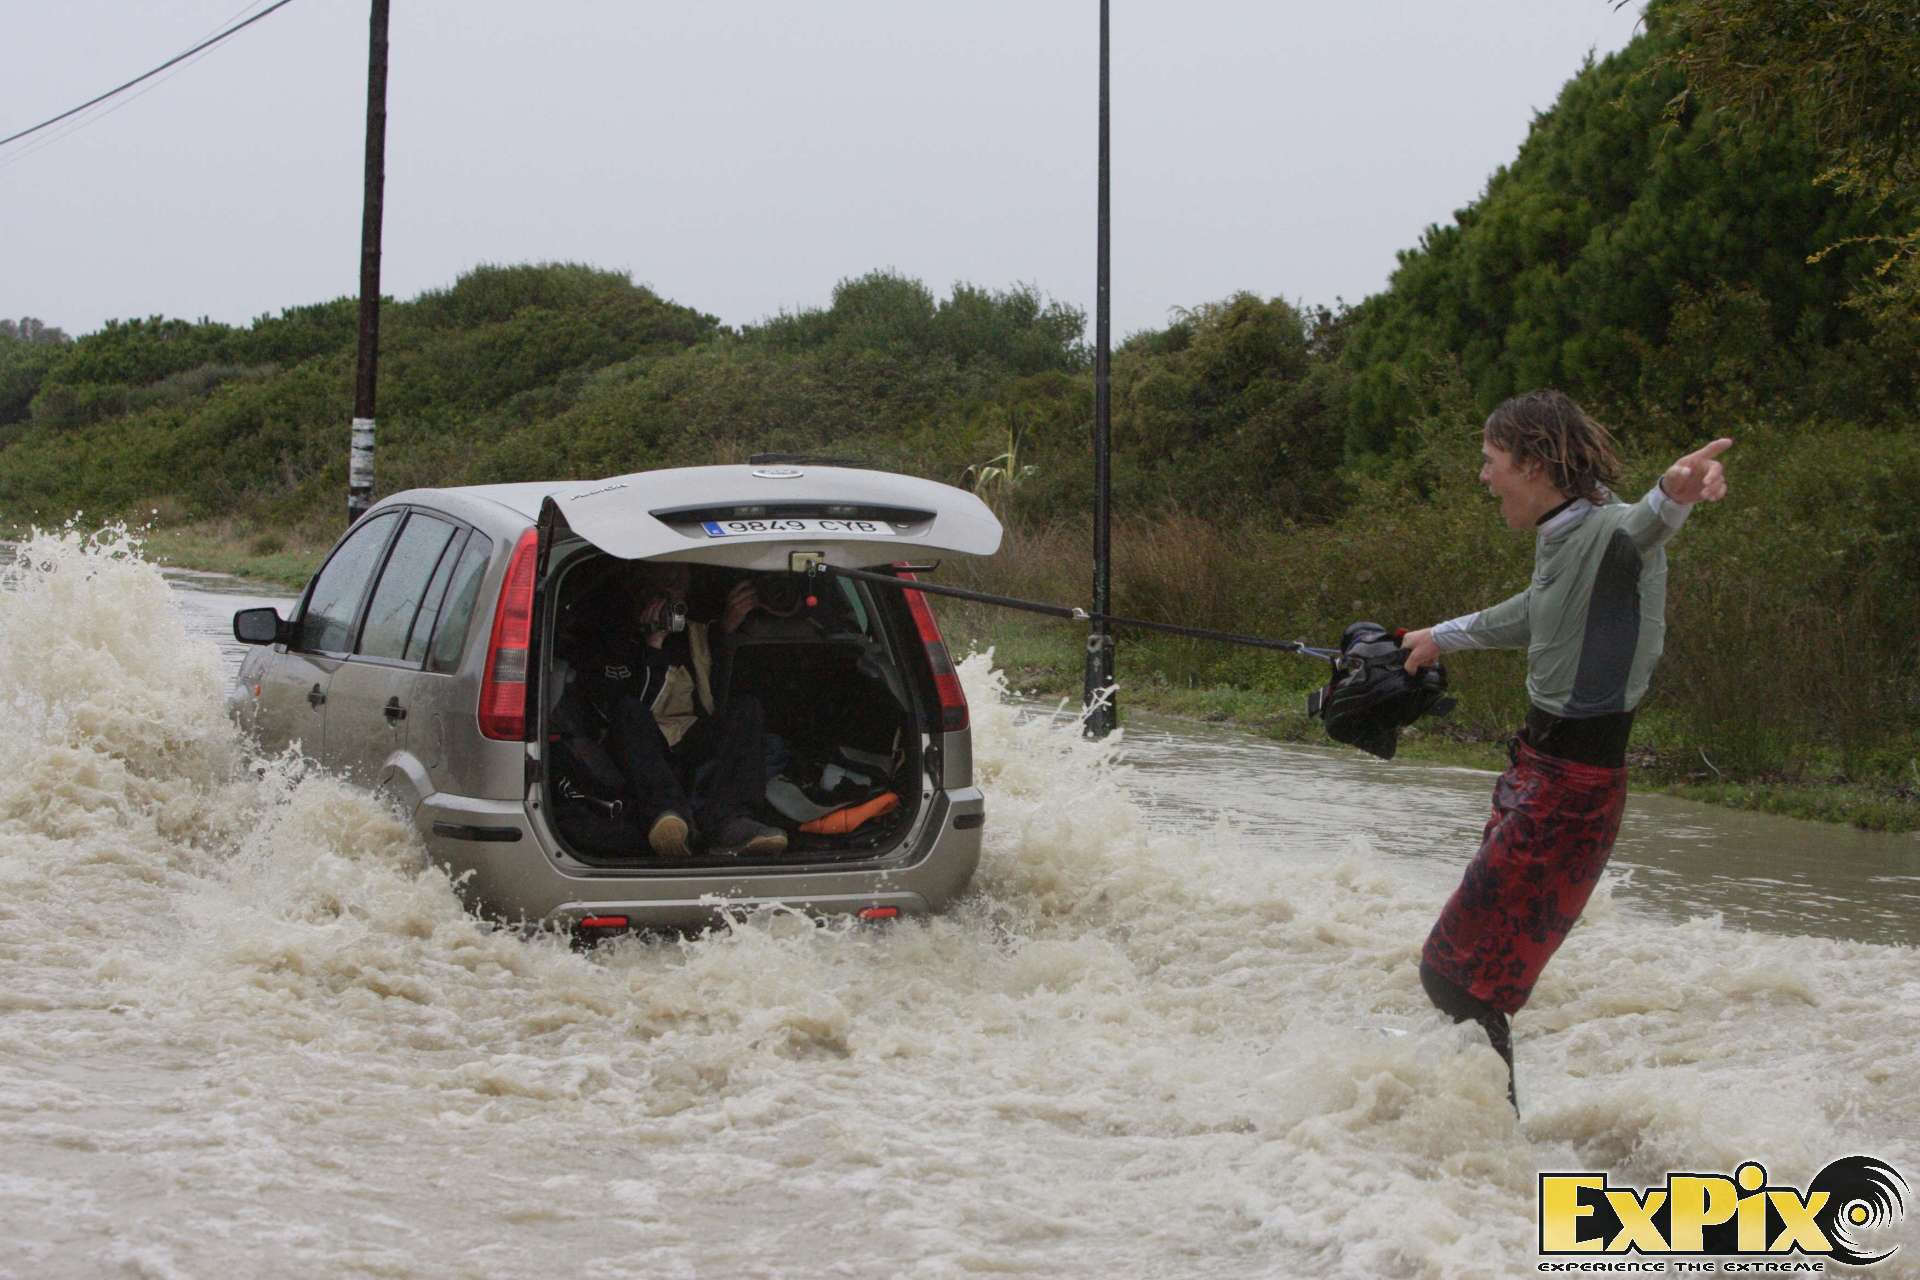 Lewis Crathern Kiteboarder Wakeboarding behind a car